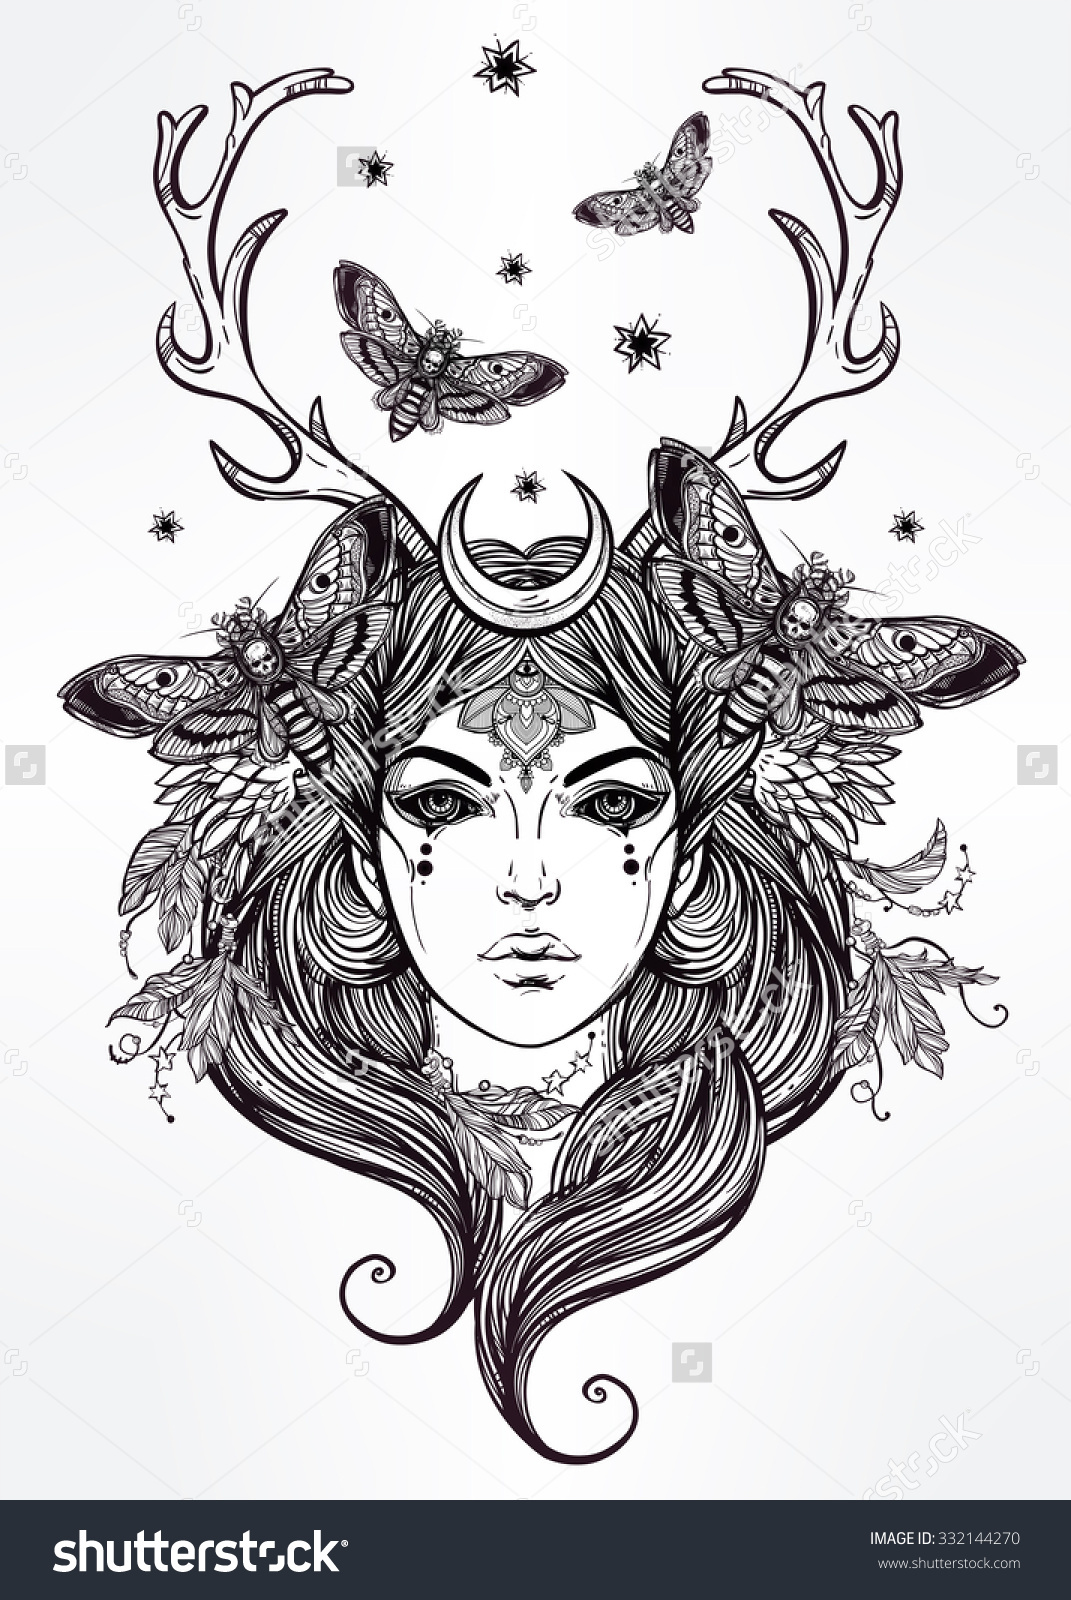 Hand Drawn Beautiful Artwork Banshee Portriat Stock Vector.